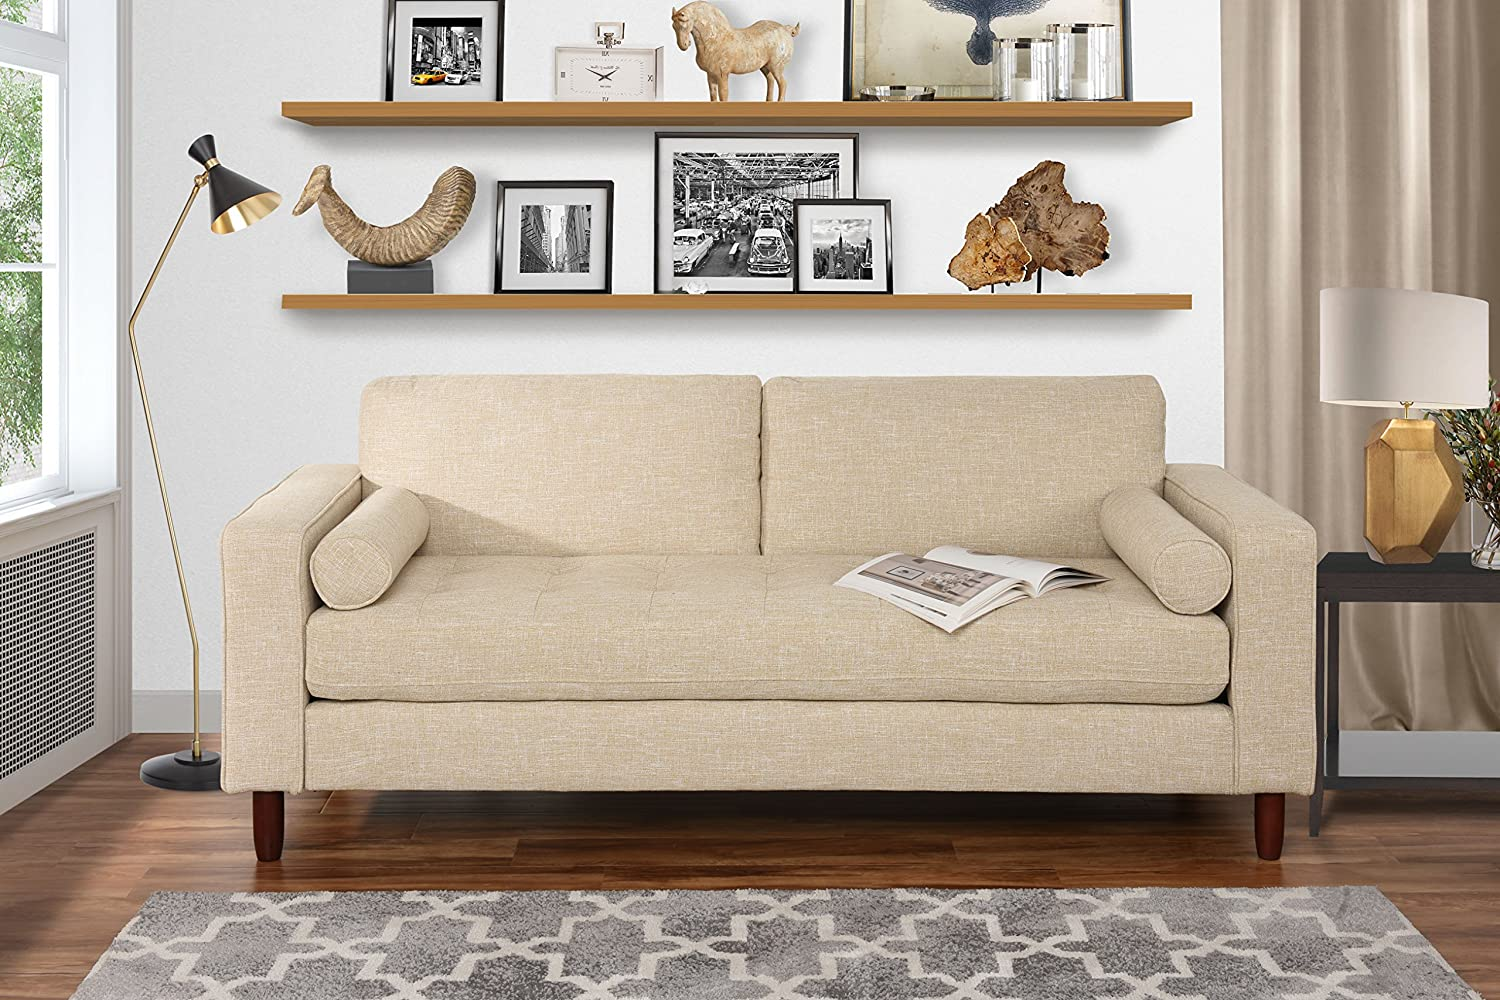 Amazon com modern fabric sofa with tufted linen fabric living room couch beige kitchen dining